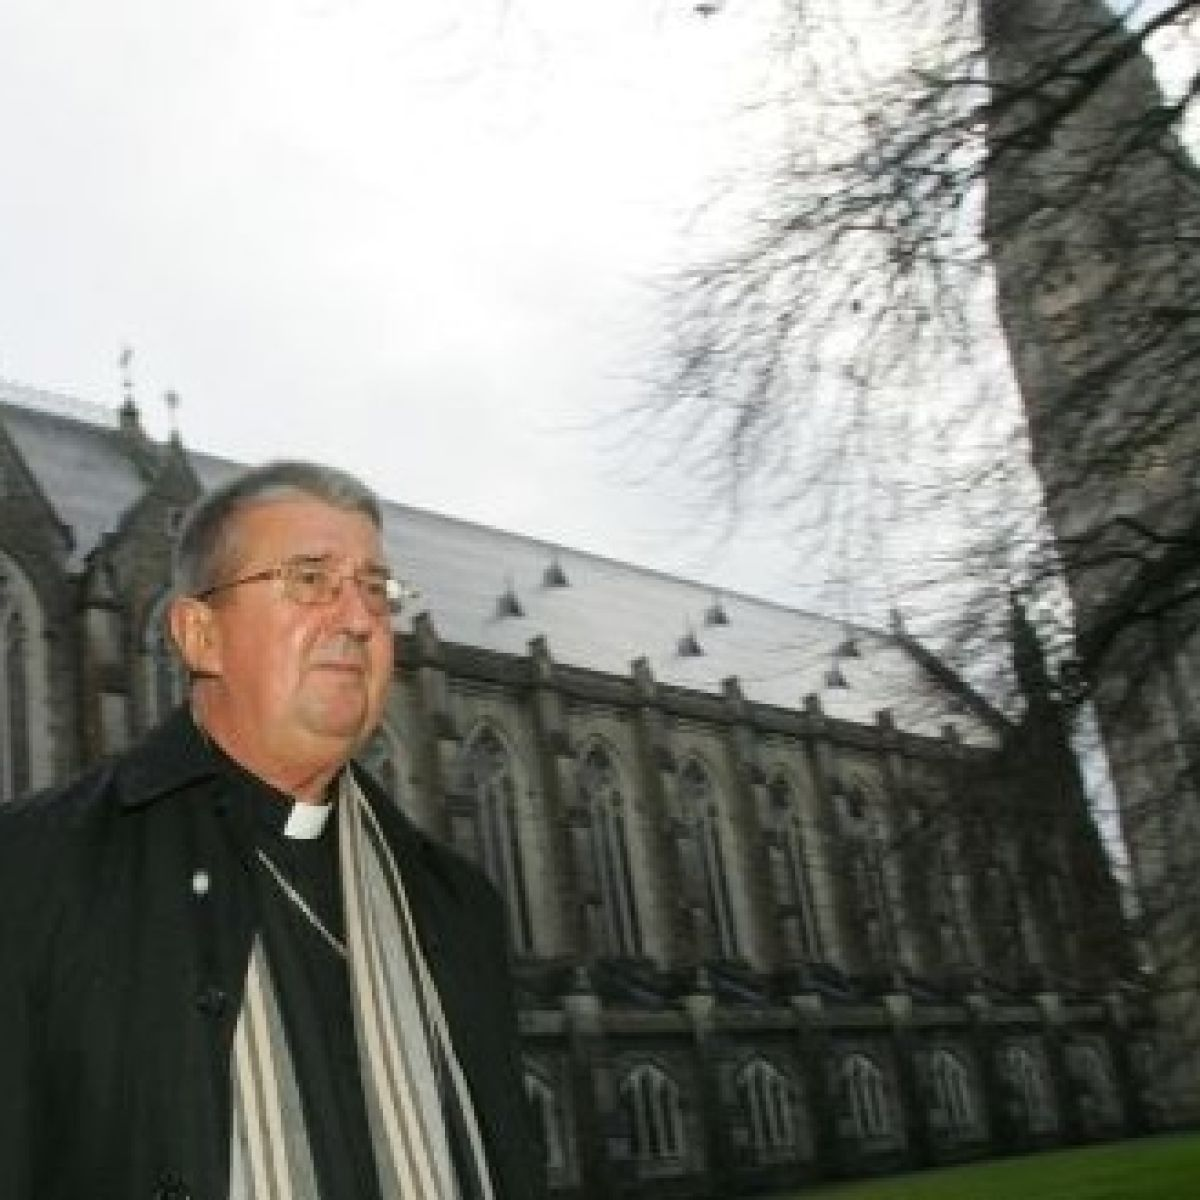 Maynooth seminary to review social media policies